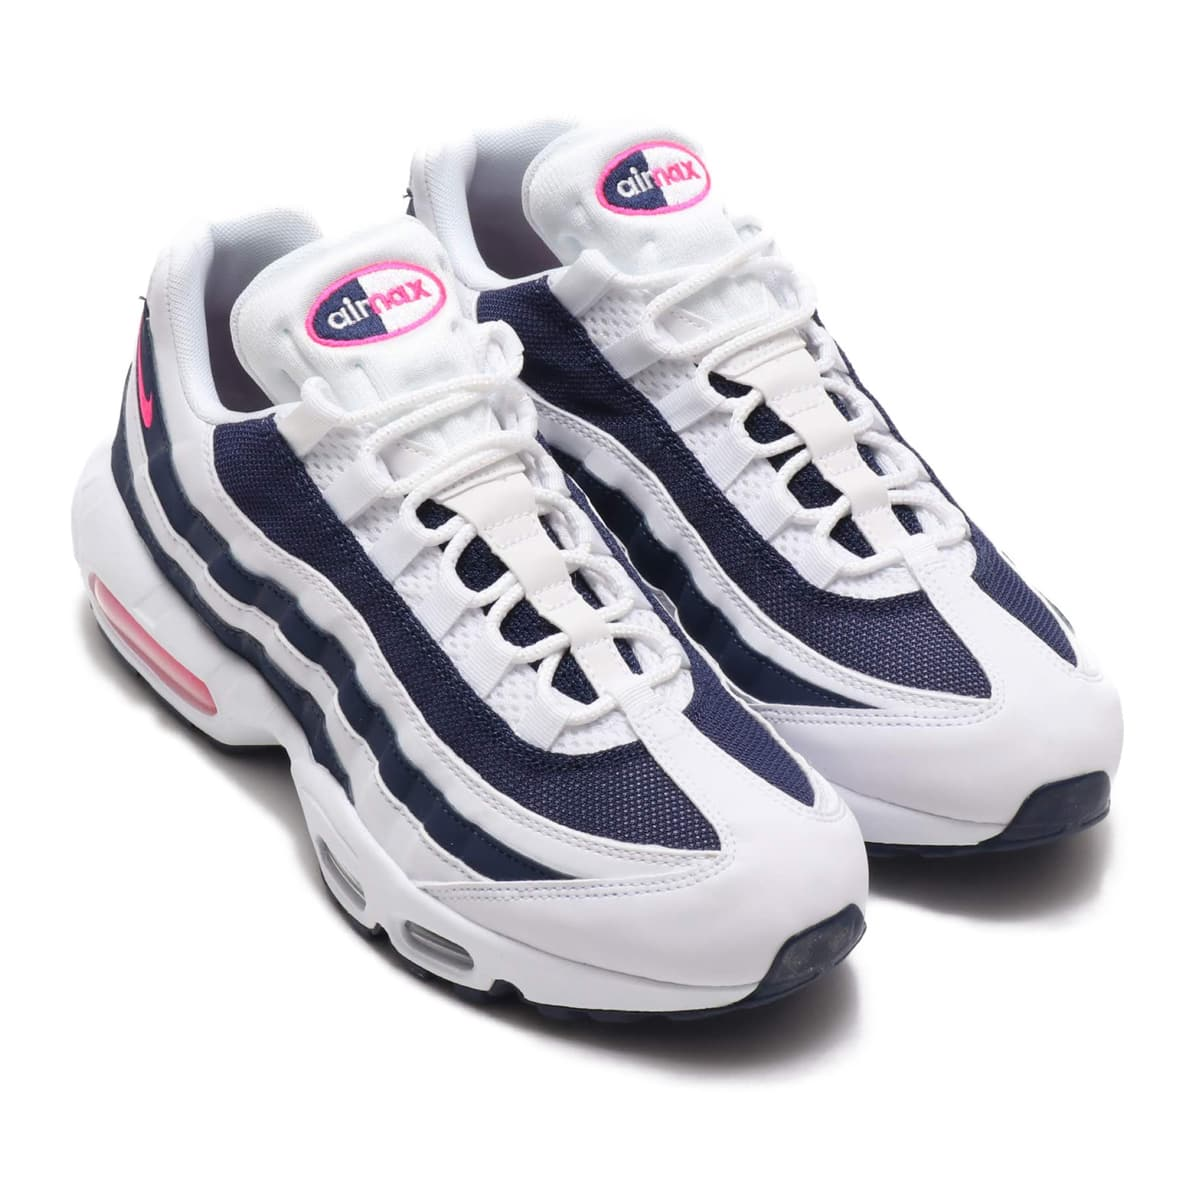 NIKE AIR MAX 95 WHITE/PINK BLAST-WHITE-MIDNIGHT NAVY 19FA-S_photo_large